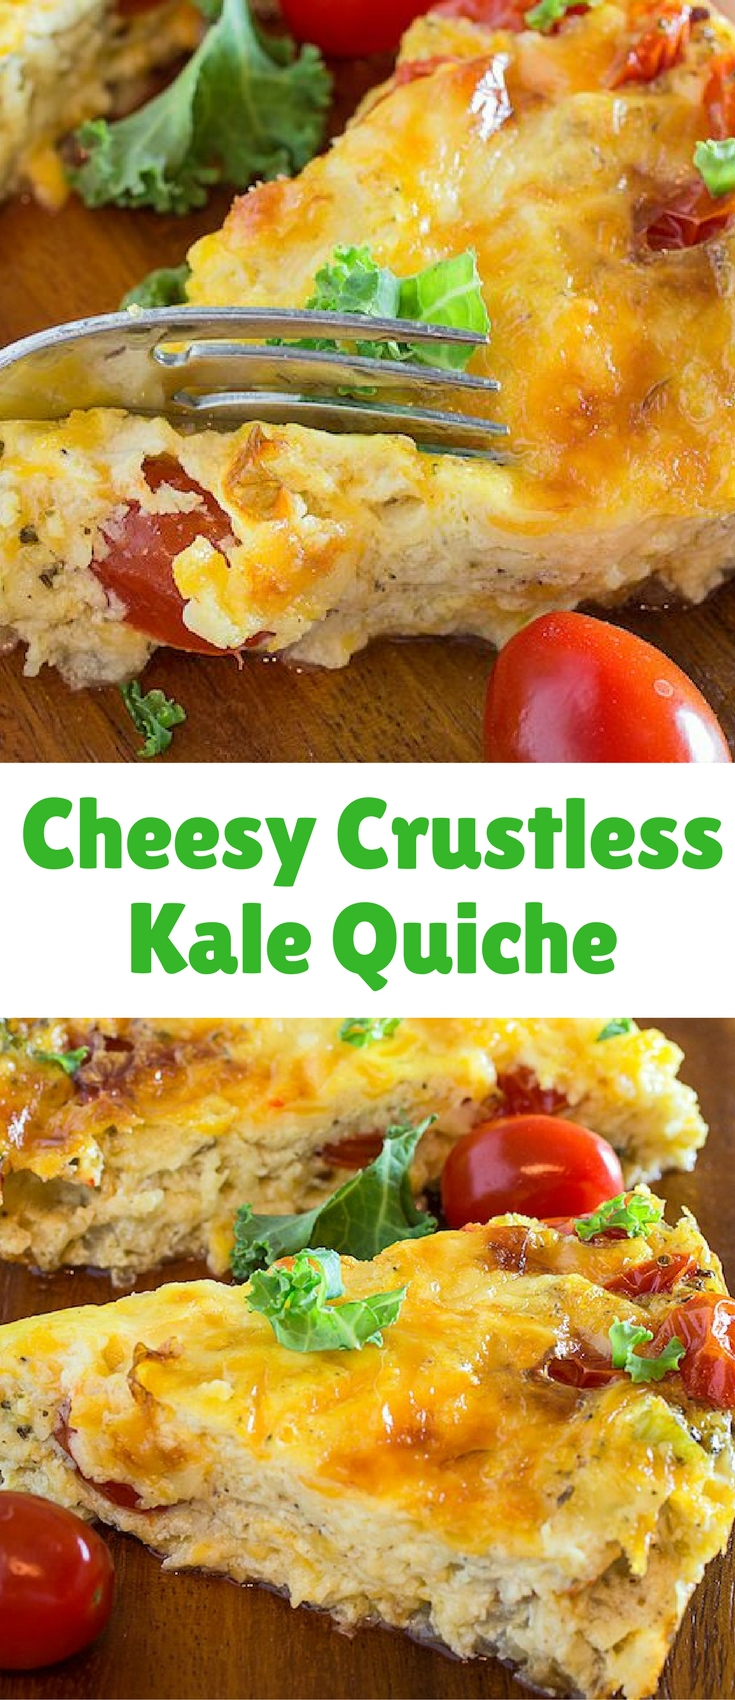 Cheesy Crustless Kale Quiche is the perfect gluten free brunch recipe! It's rich, filling, and bursting with southwestern flavors.